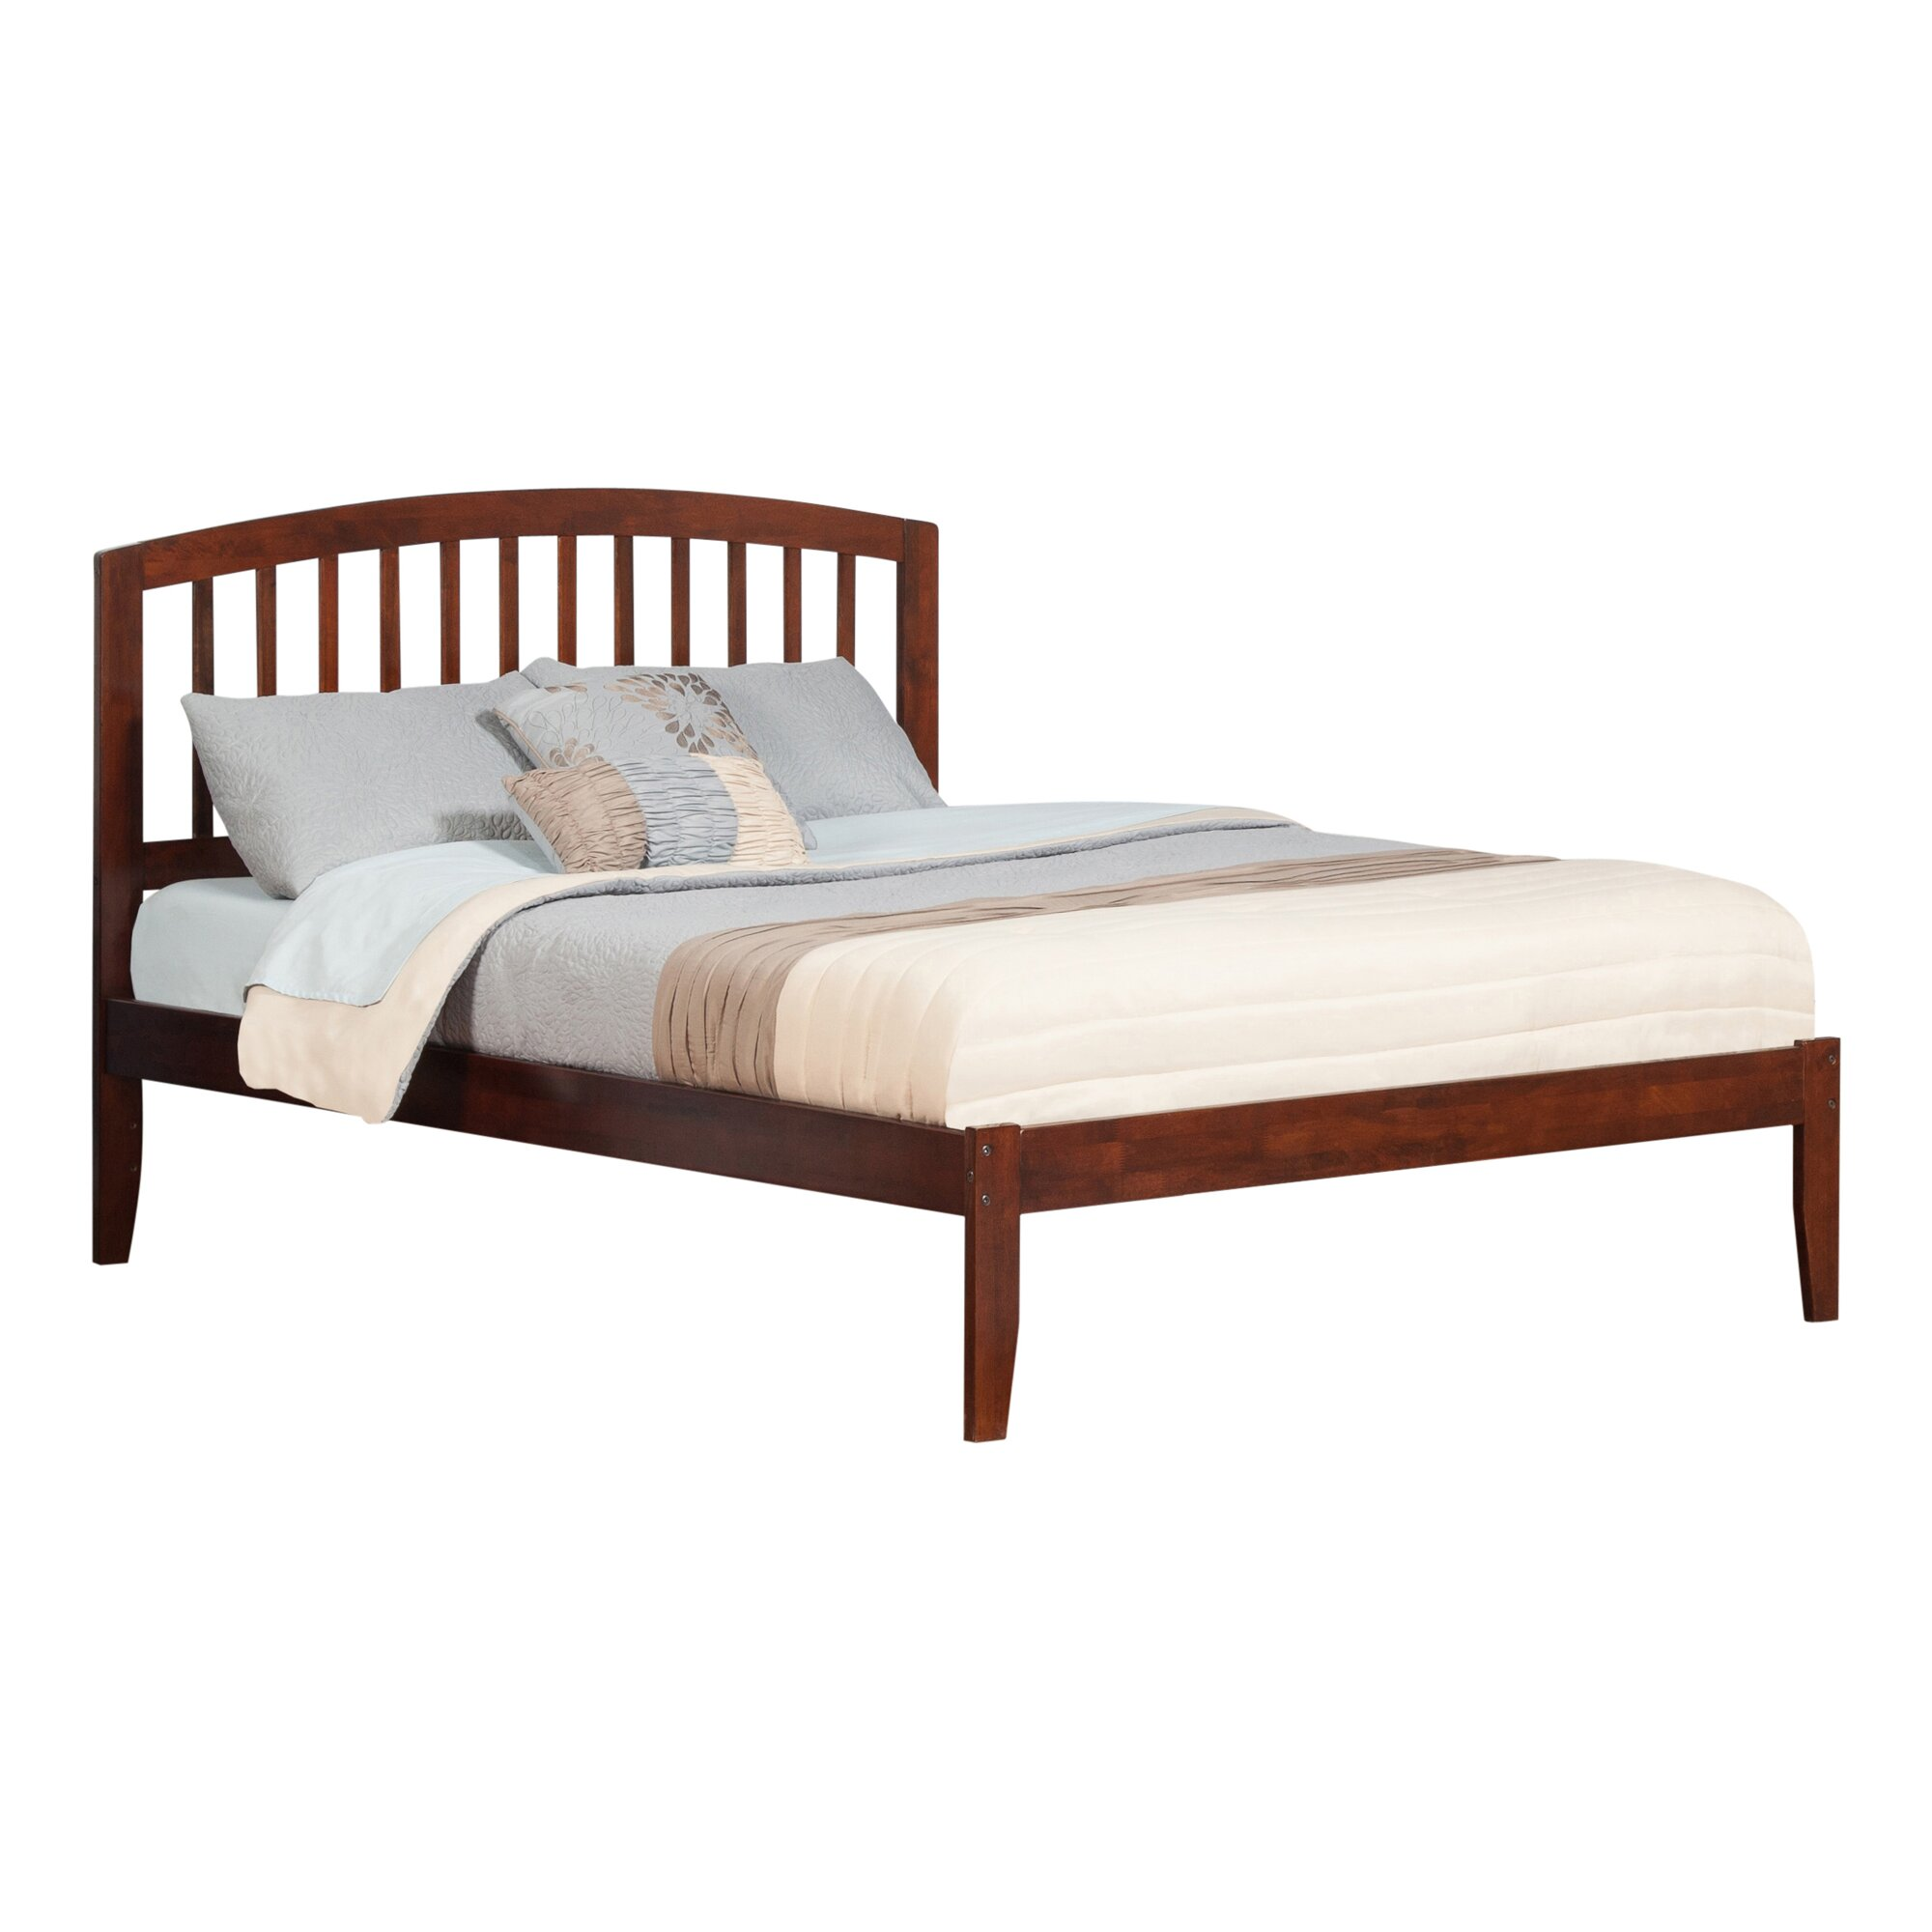 Viv rae timmy king platform bed reviews wayfair Platform king bed